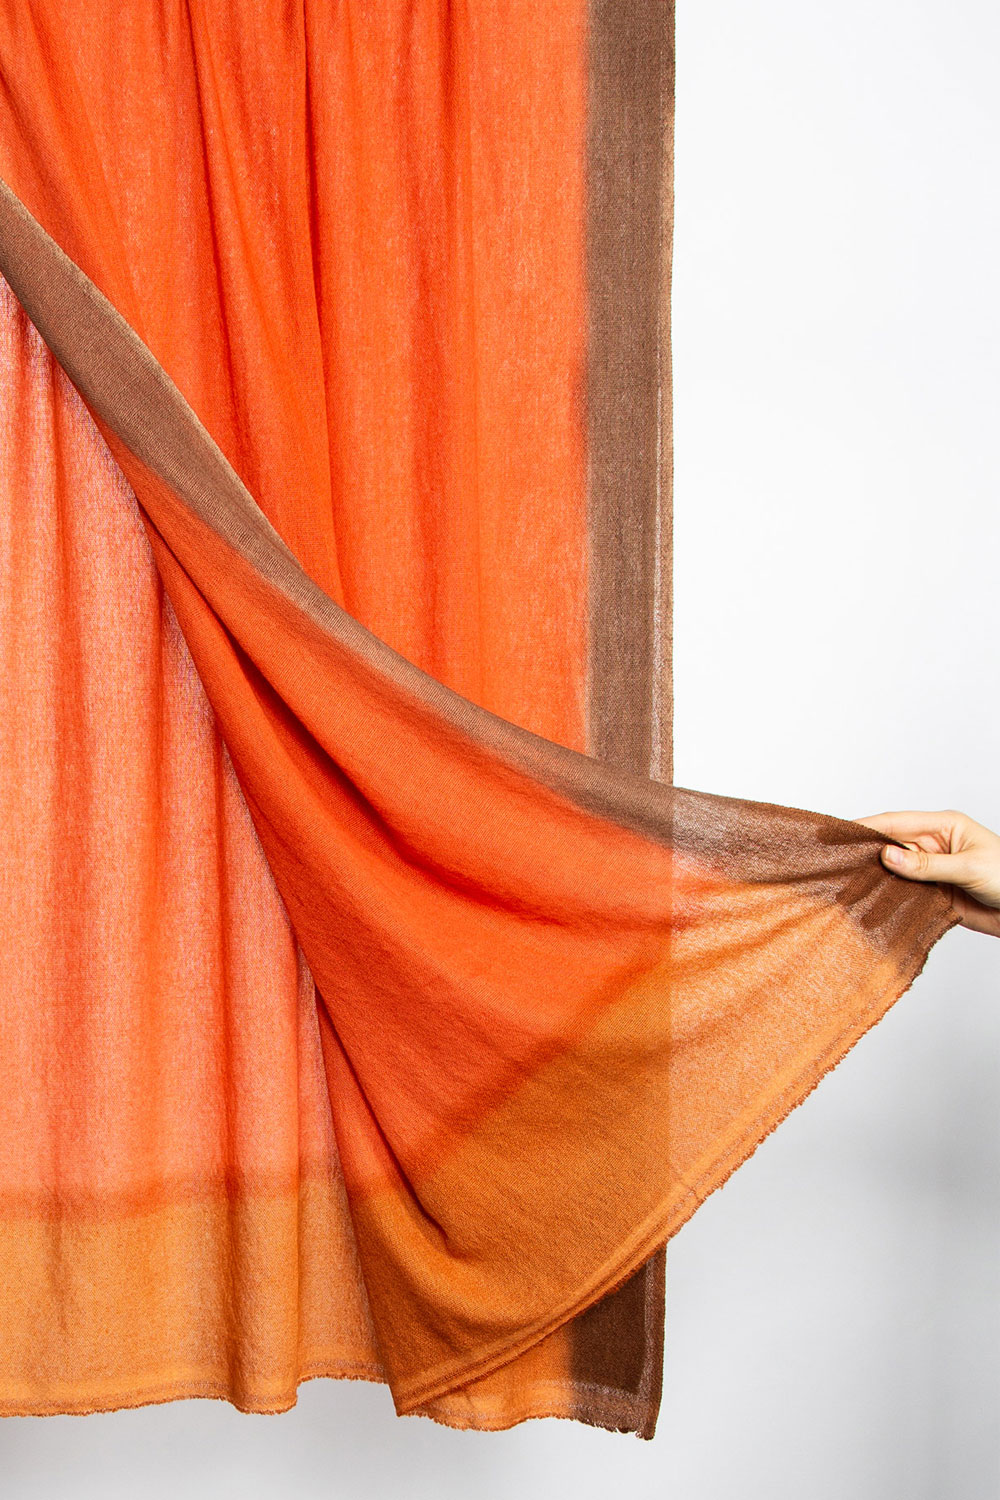 Bajra Cashmere Shawl in Variegated Oranges with Brown Border  $345